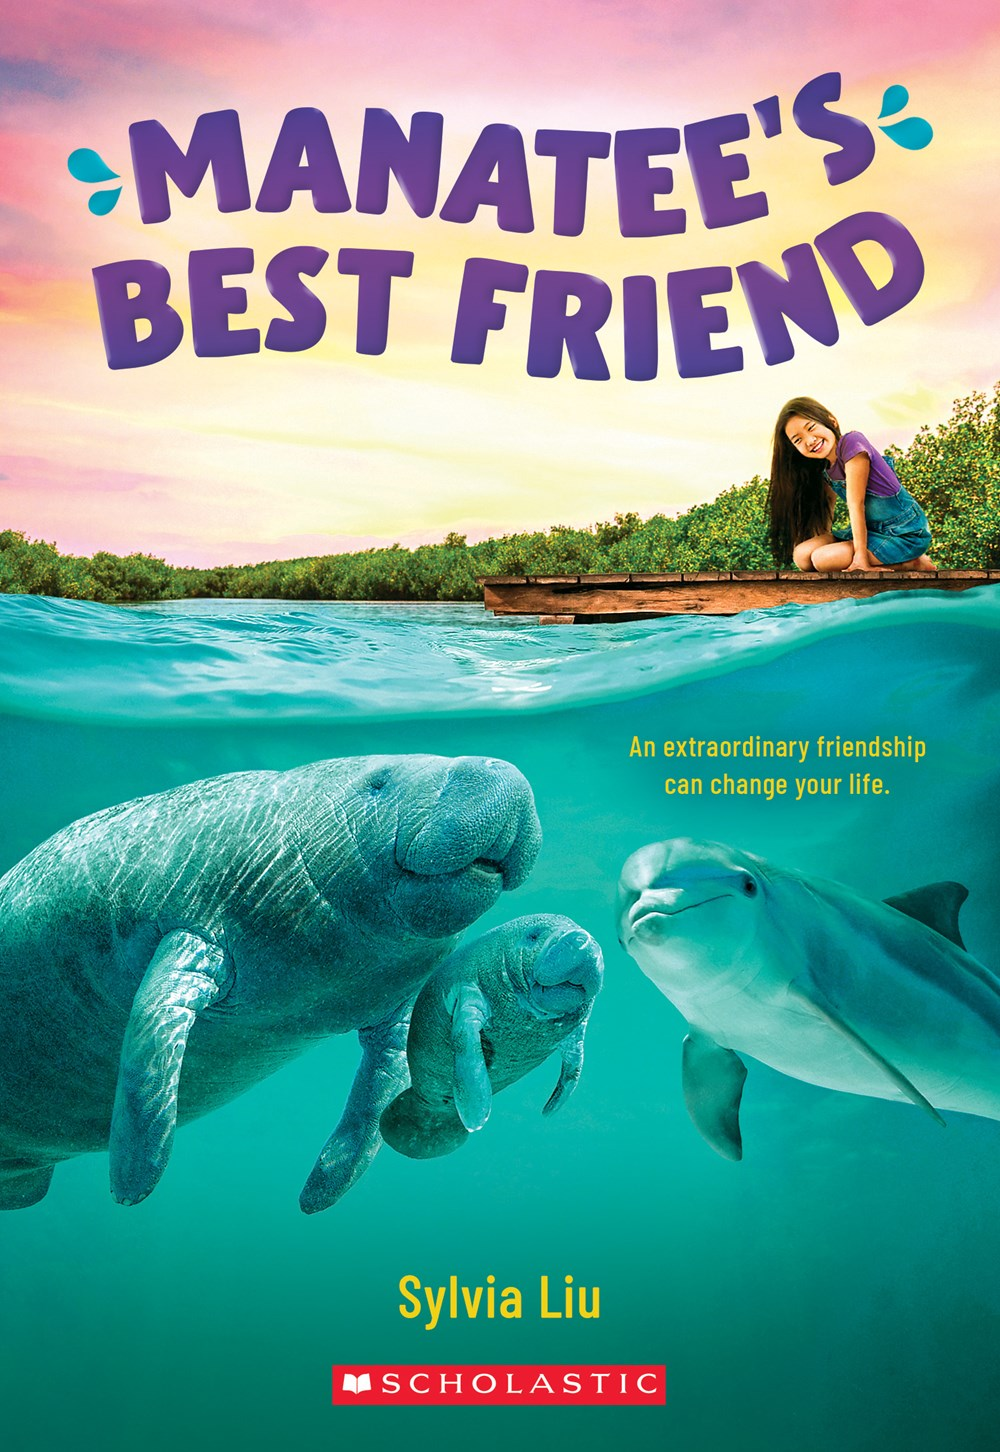 Manatee's Best Friend by Sylvia Liu